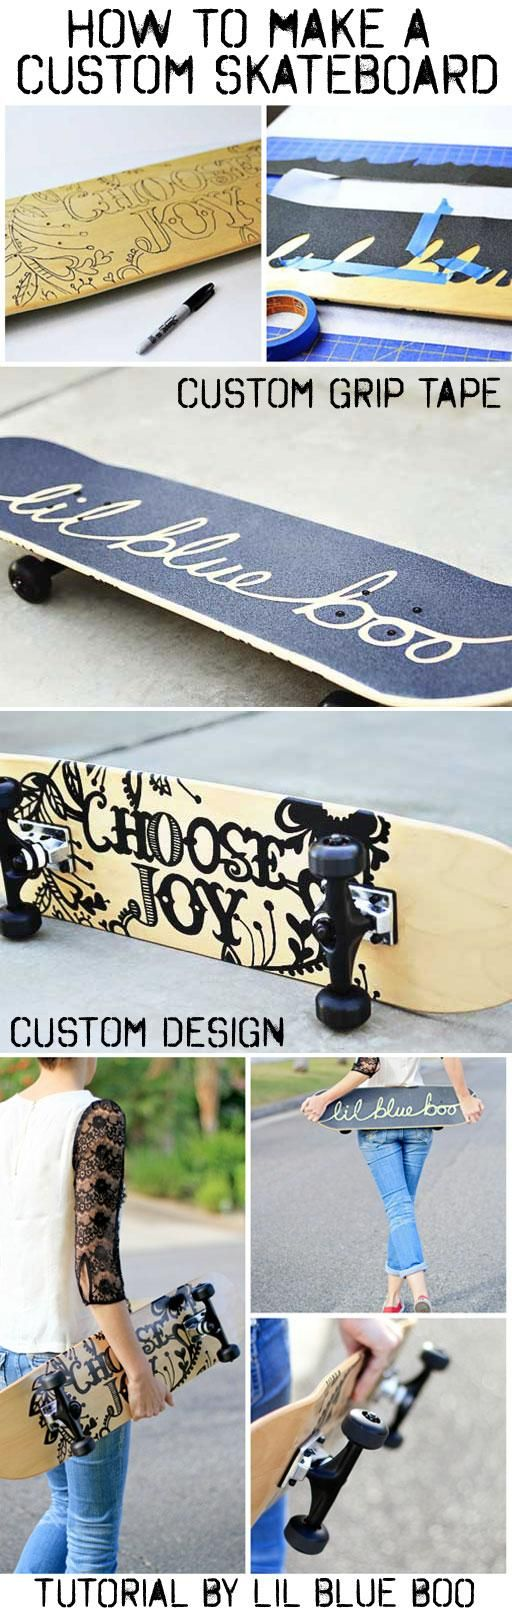 How to make and paint a custom skateboard (custom grip tape to custom design) Great birthday party idea